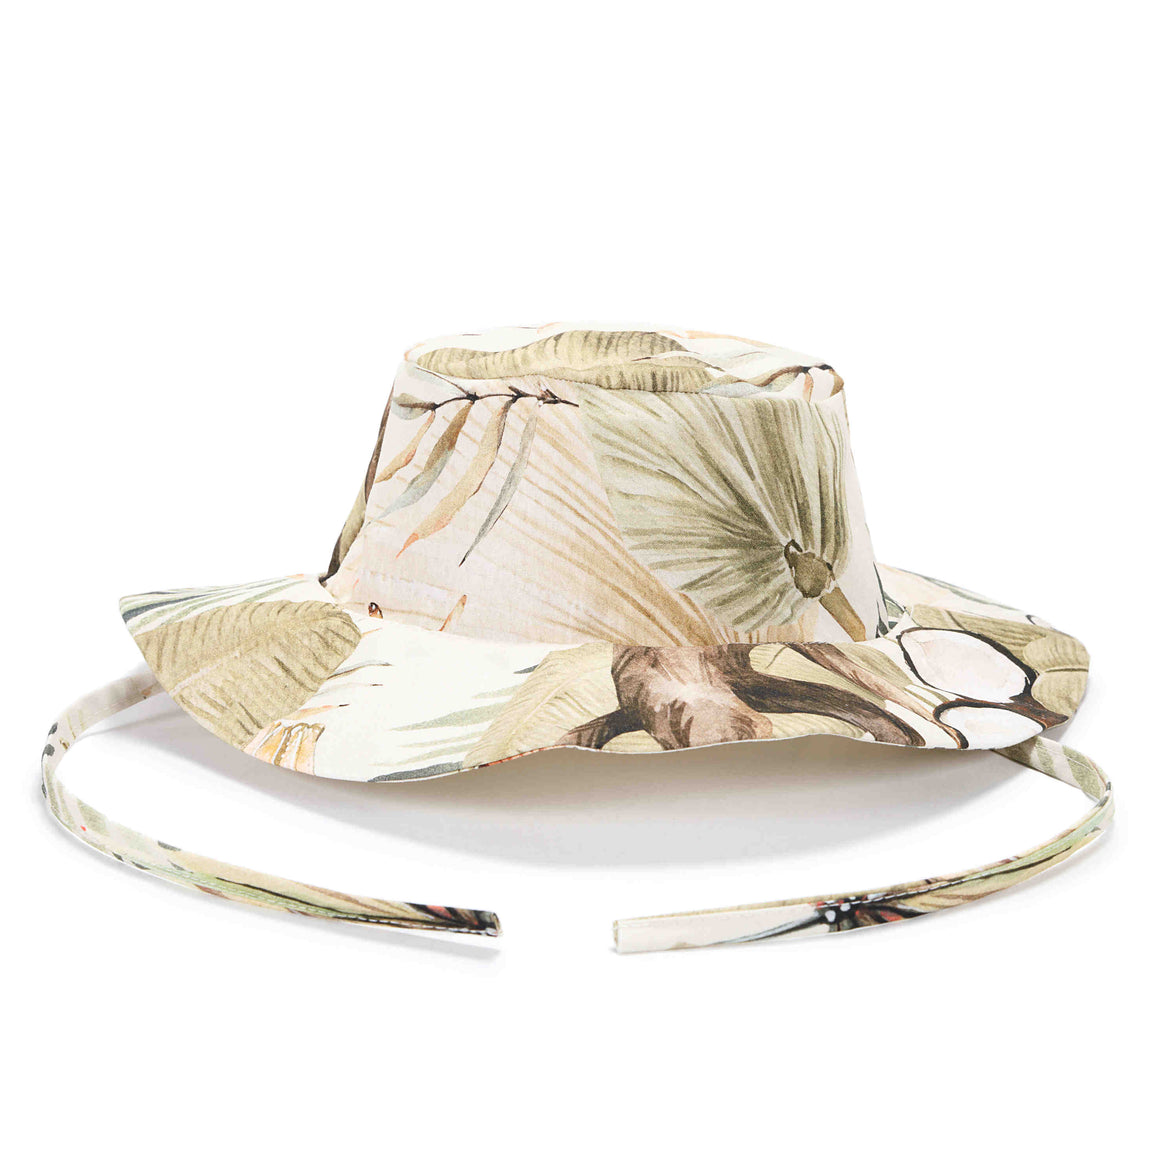 SAFARI HAT - Boho Coco